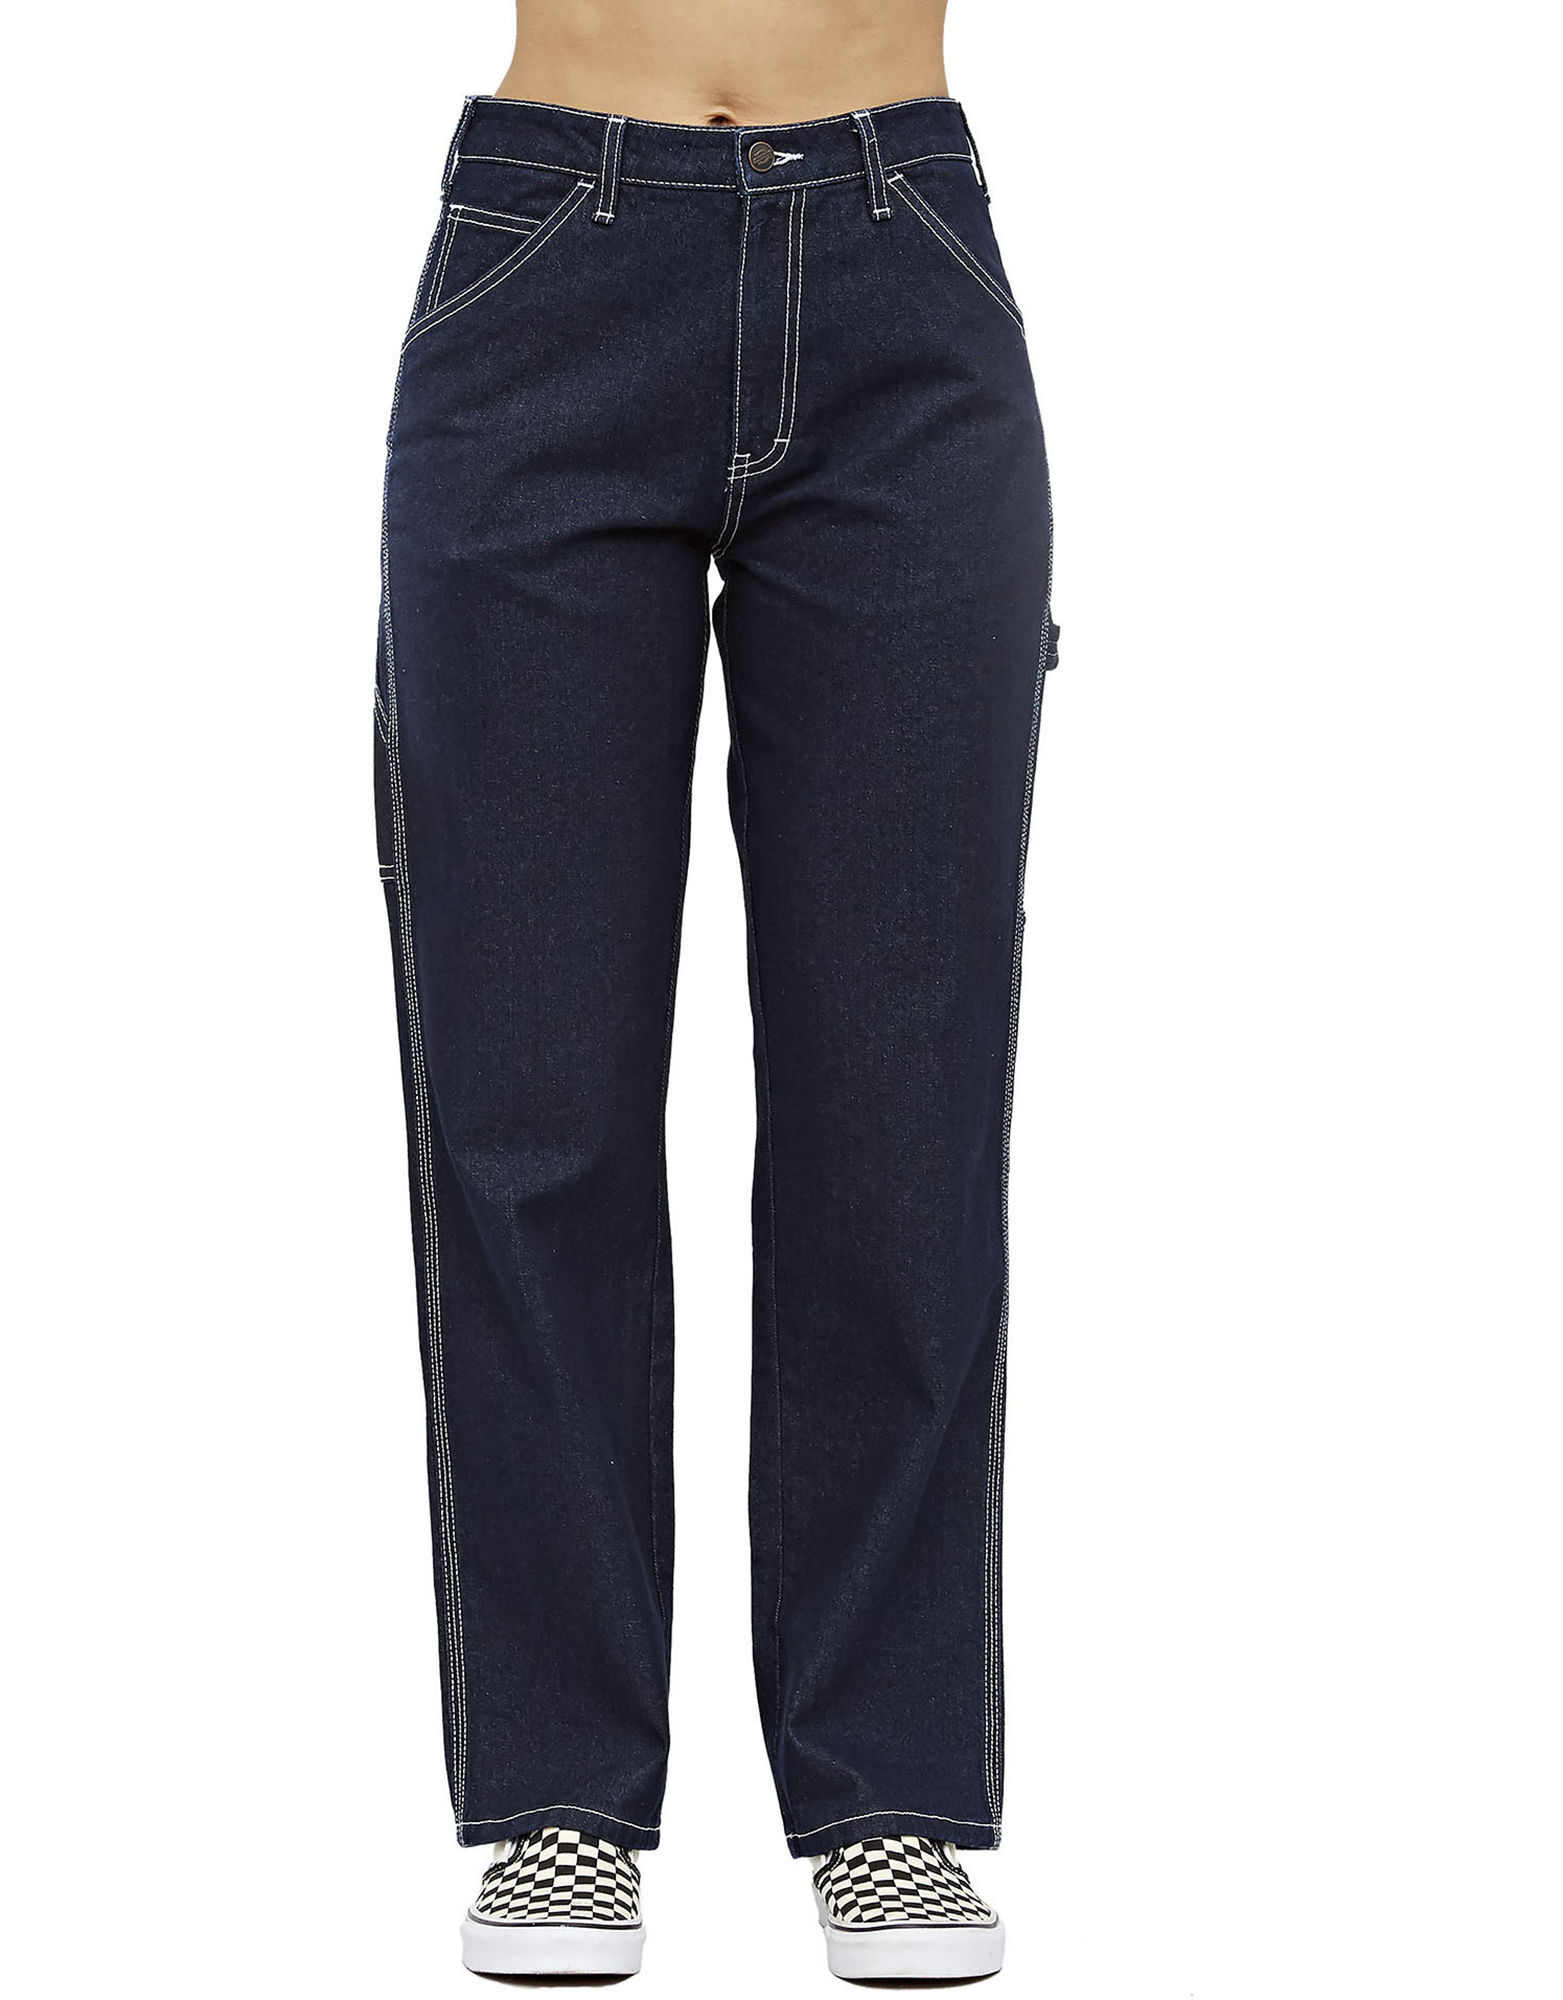 Girl Juniors' Relaxed Fit Carpenter Jeans by Dickies, available on dickies.com for $59.99 Emily Ratajkowski Pants Exact Product